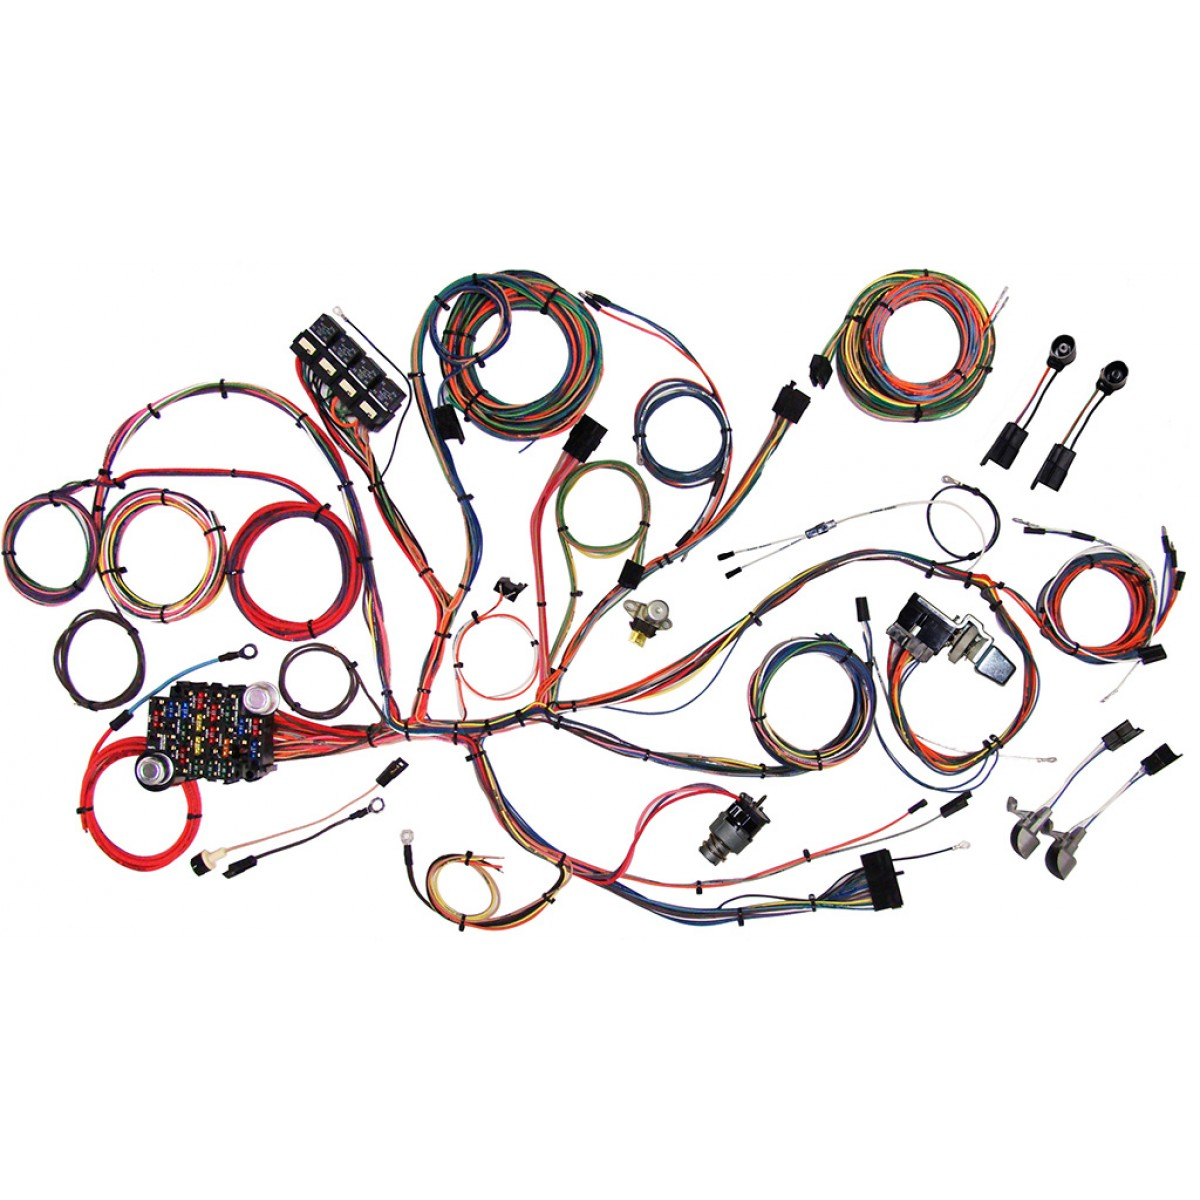 1964 1966 ford mustang wire harness complete wiring harness kit rh code510 com 1964 ford galaxie 500 wiring harness 1964 ford ranchero wiring harness